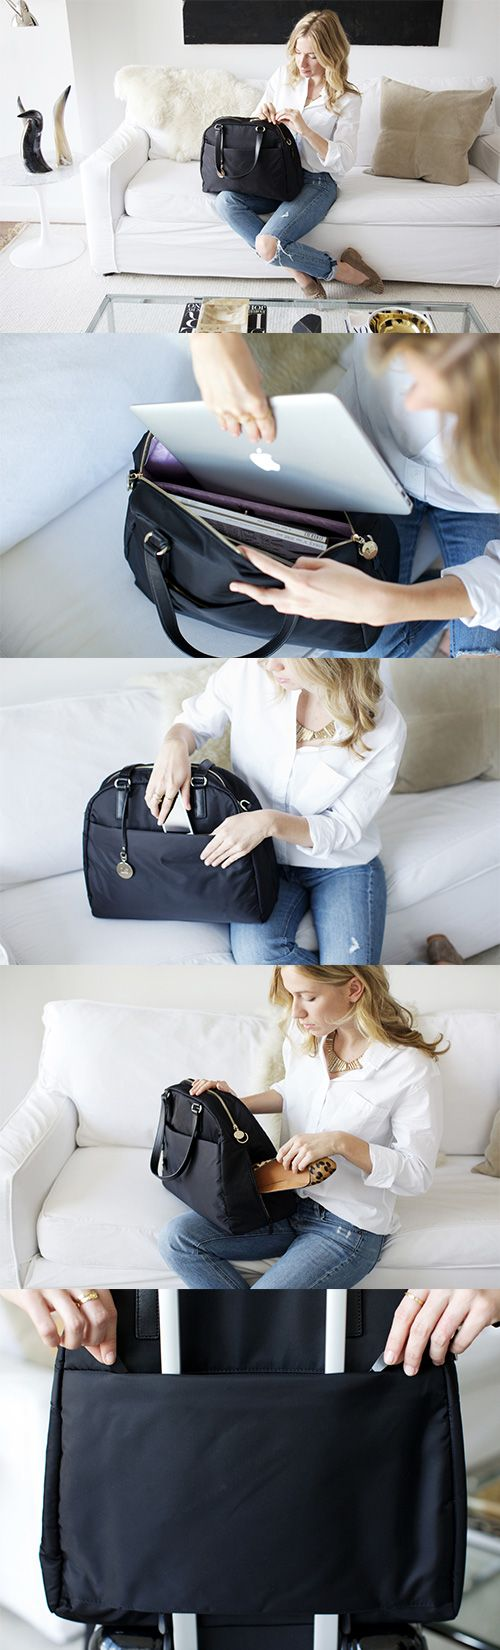 """""""The OMG"""" - lightweight travel bag, tech friendly laptop tote, and stylish gym bag. Designed by Lo & Sons #loandsons"""